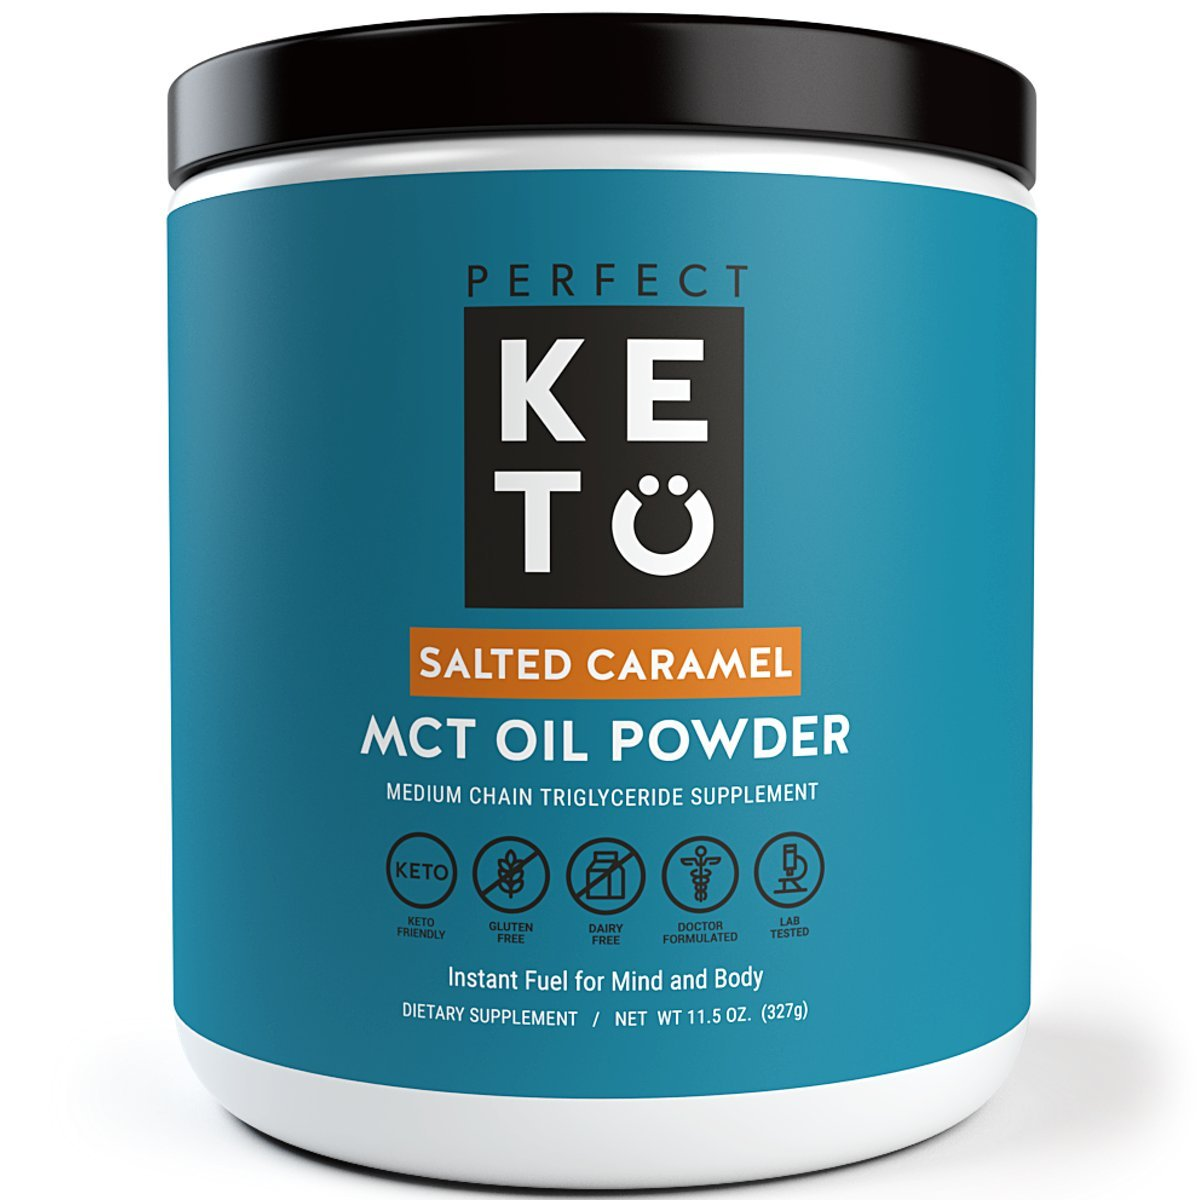 Perfect Keto MCT Oil Powder: Salted Caramel Ketosis Supplement (Medium Chain Triglycerides - Coconuts) for Ketone Energy - Paleo Natural Non Dairy Ketogenic Keto Coffee Creamer